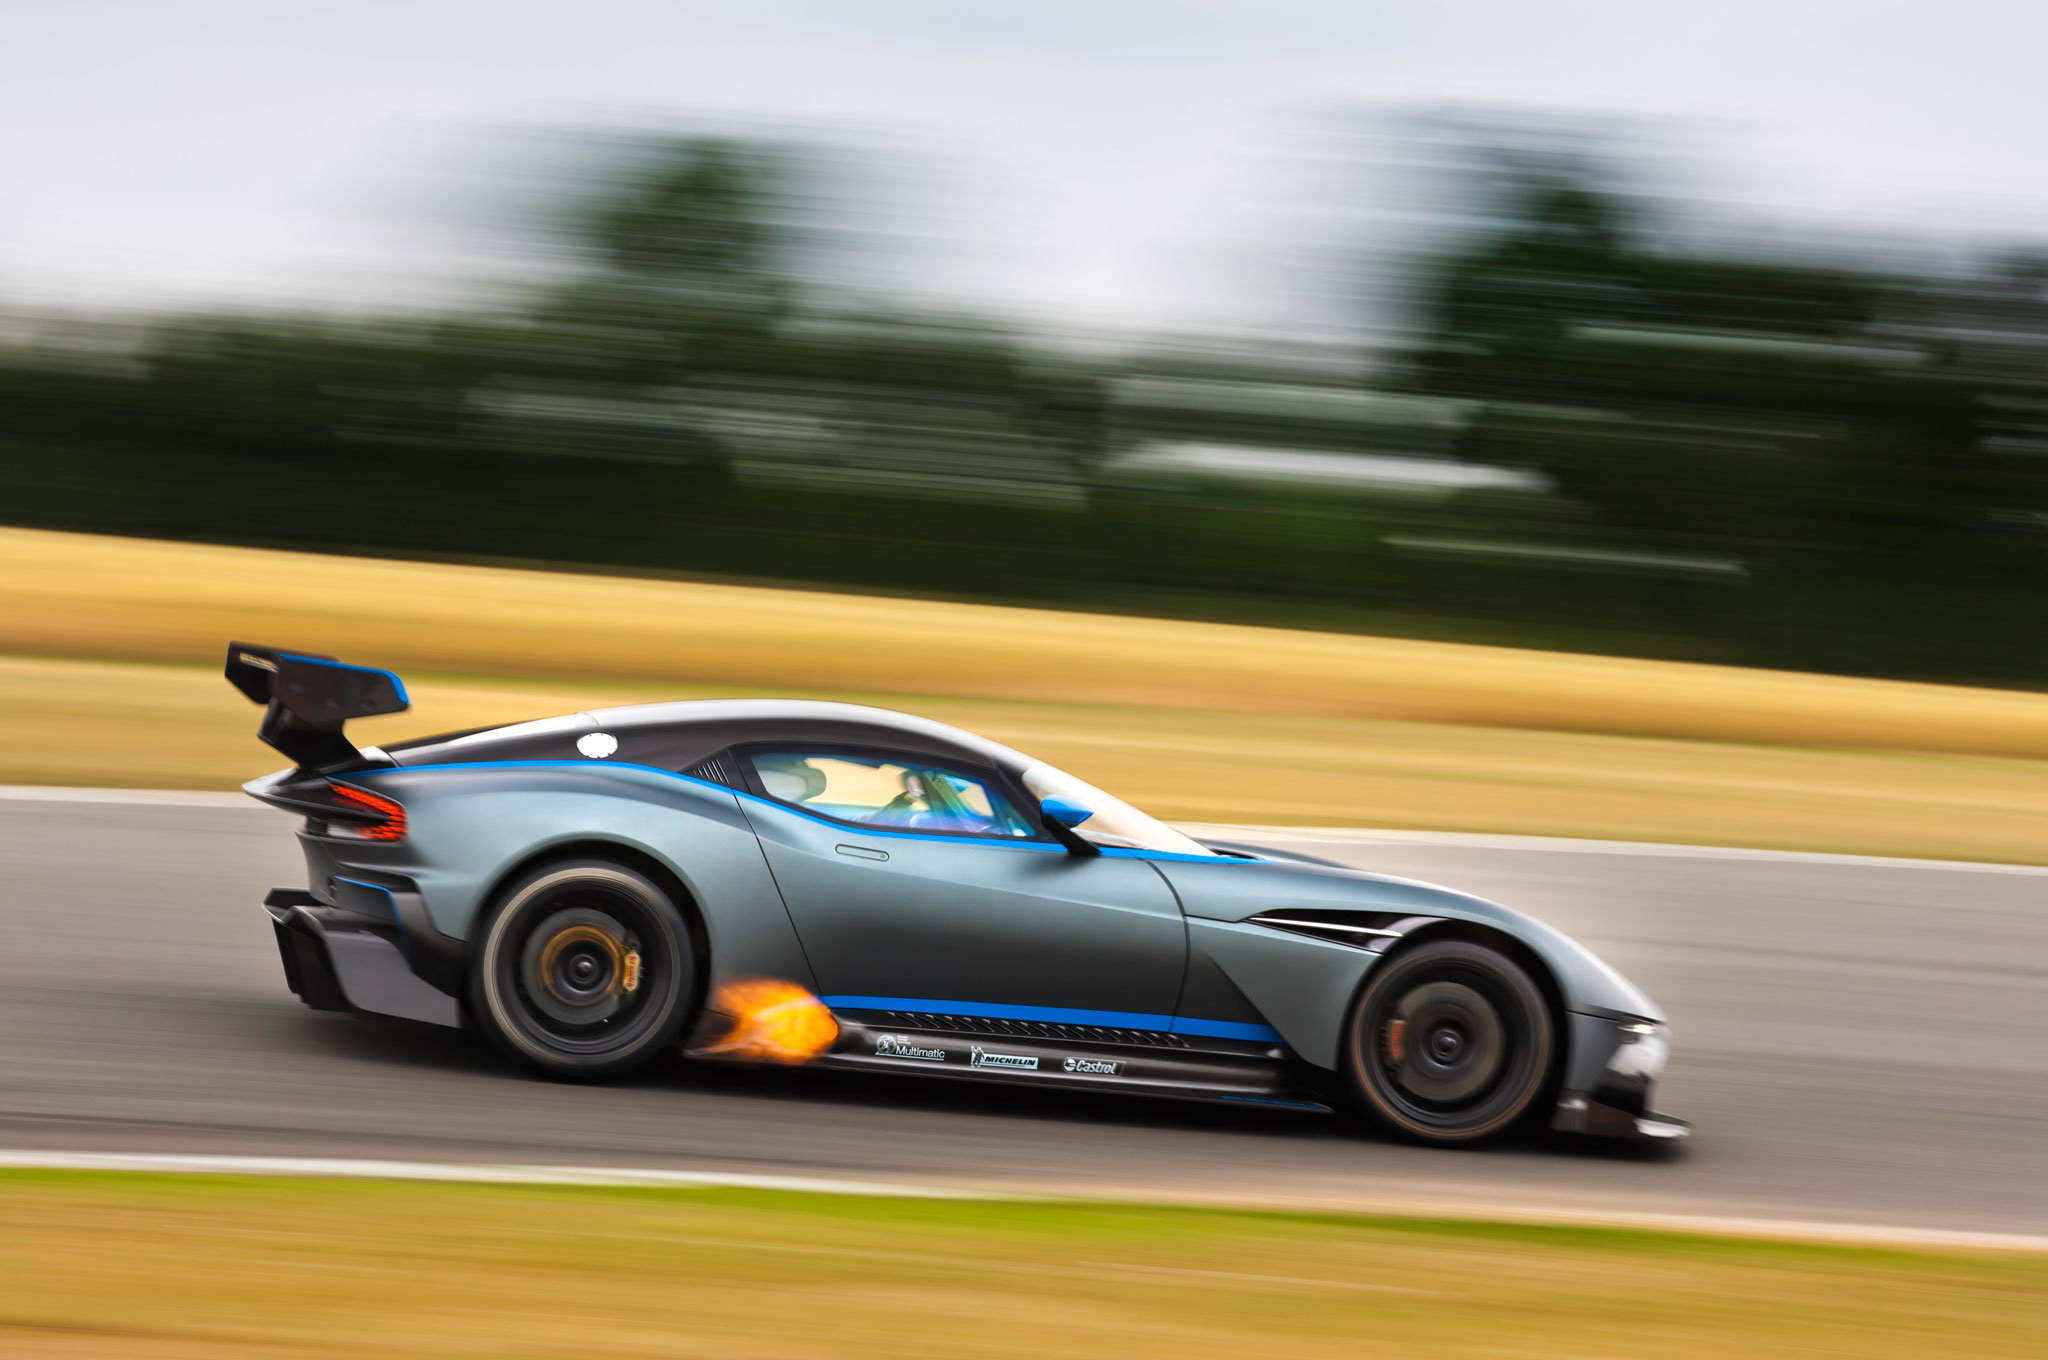 Engineering Firm To Make Road-Legal Versions Of Aston